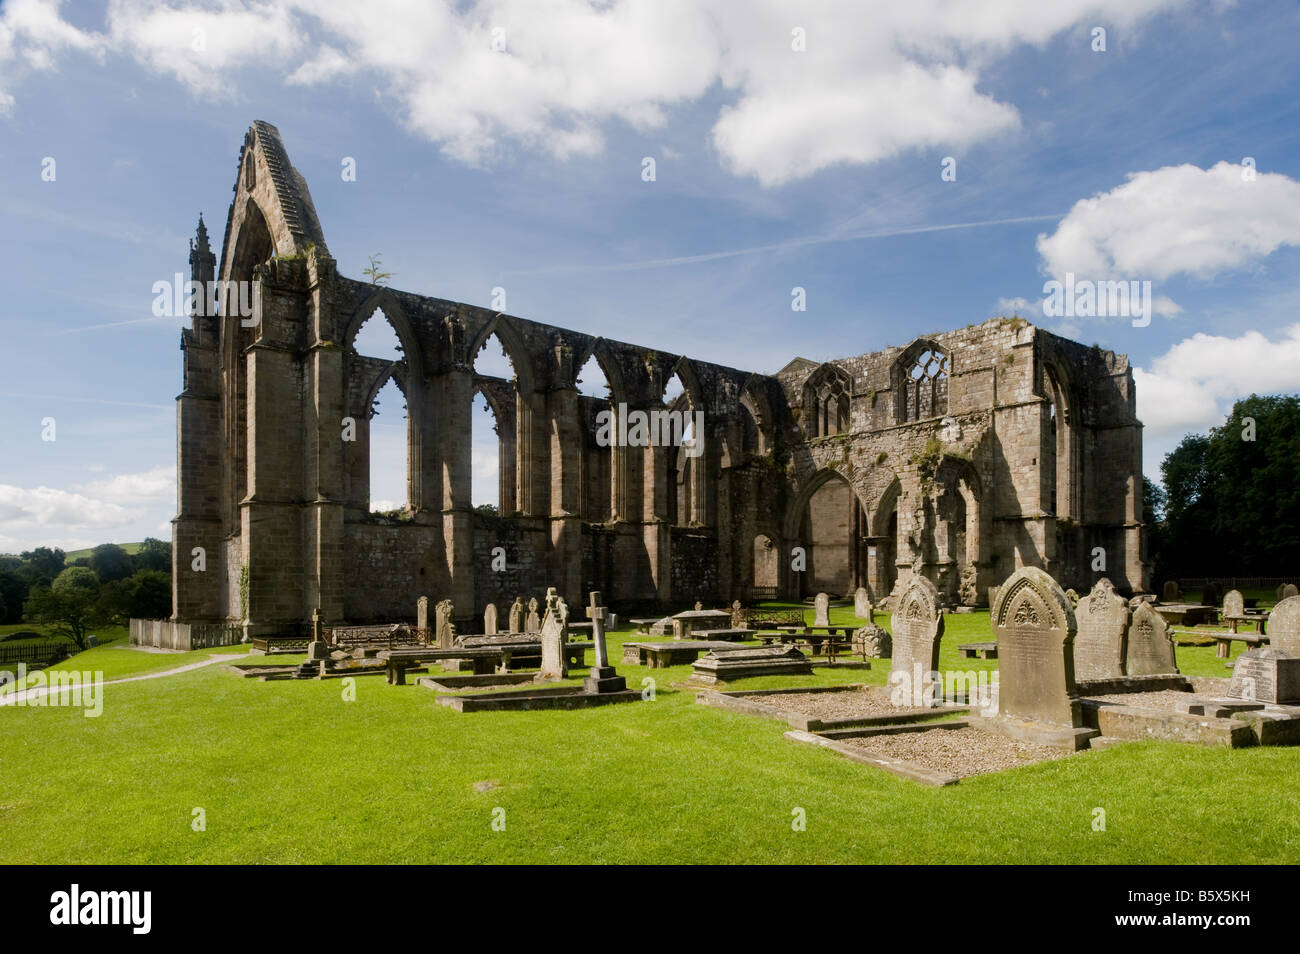 Bolton Priory towers over its graveyard. - Stock Image